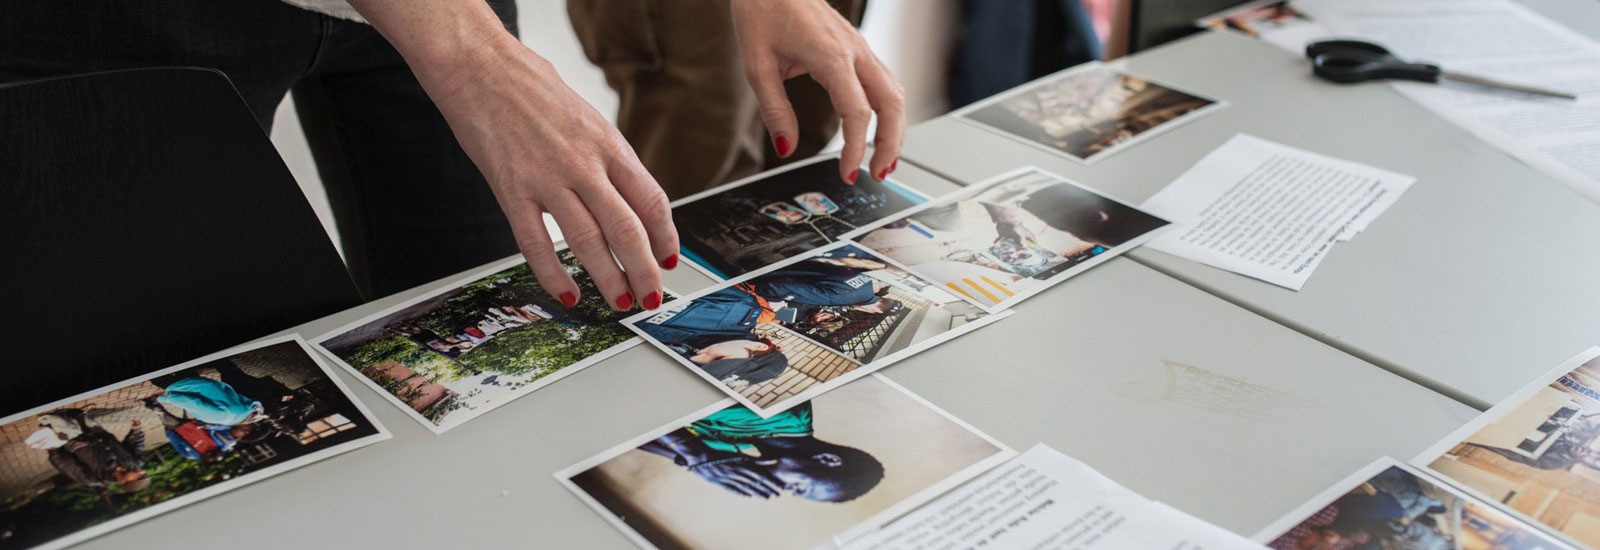 Emerge |Workshop »Picture Editing For Print, Web And Mobile«